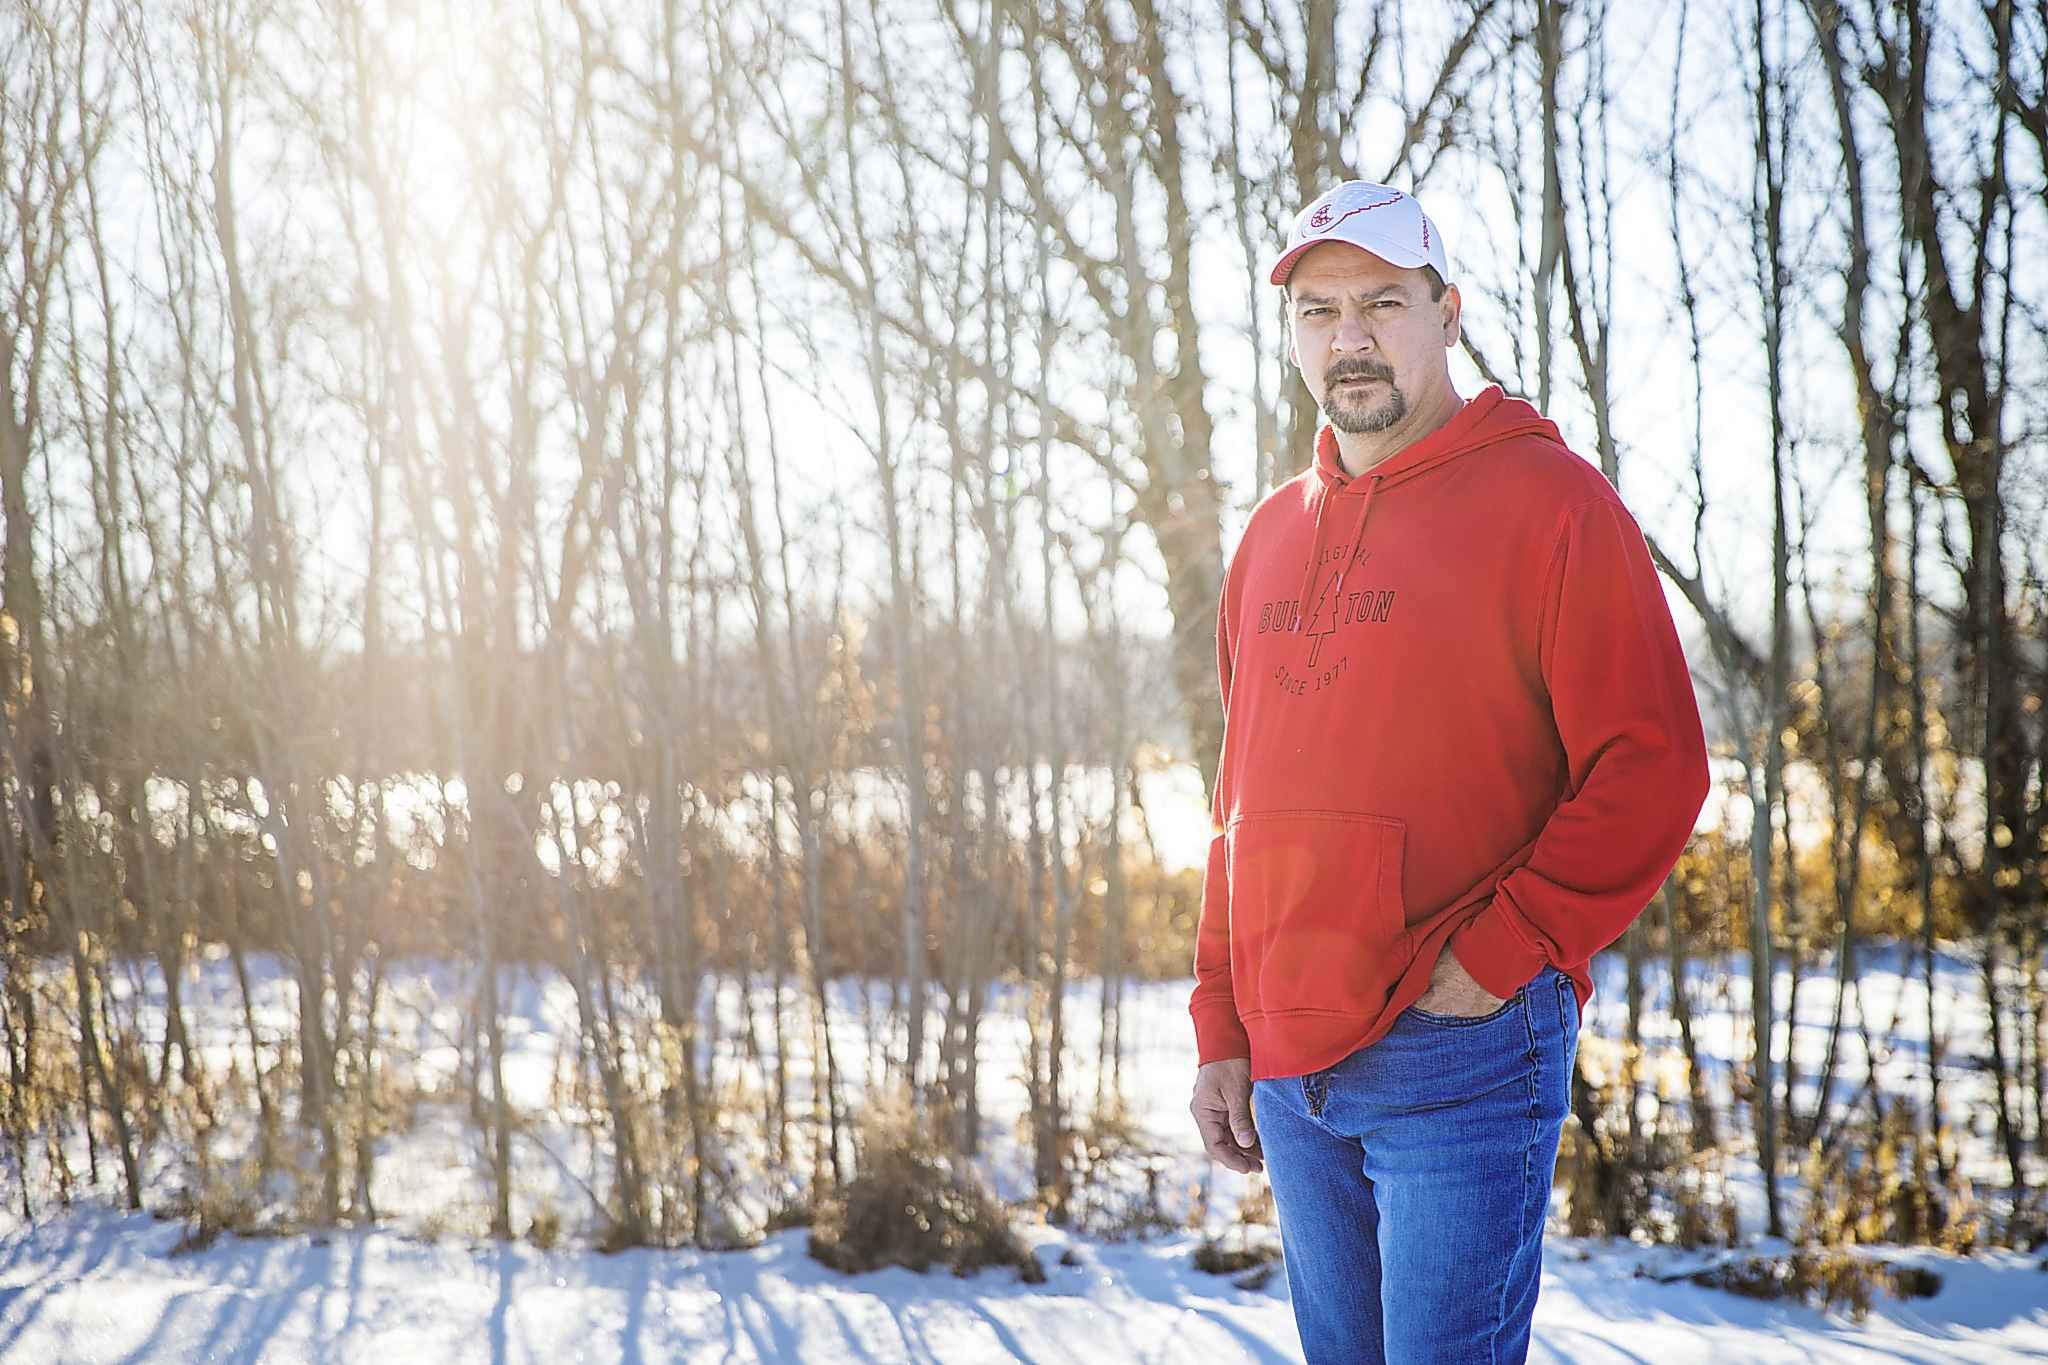 When James sensed his world was about to come crashing down, he began calling his victims, including Lloyd Pelletier, to warn them not to talk to police. (Mikaela MacKenzie / Winnipeg Free Press)